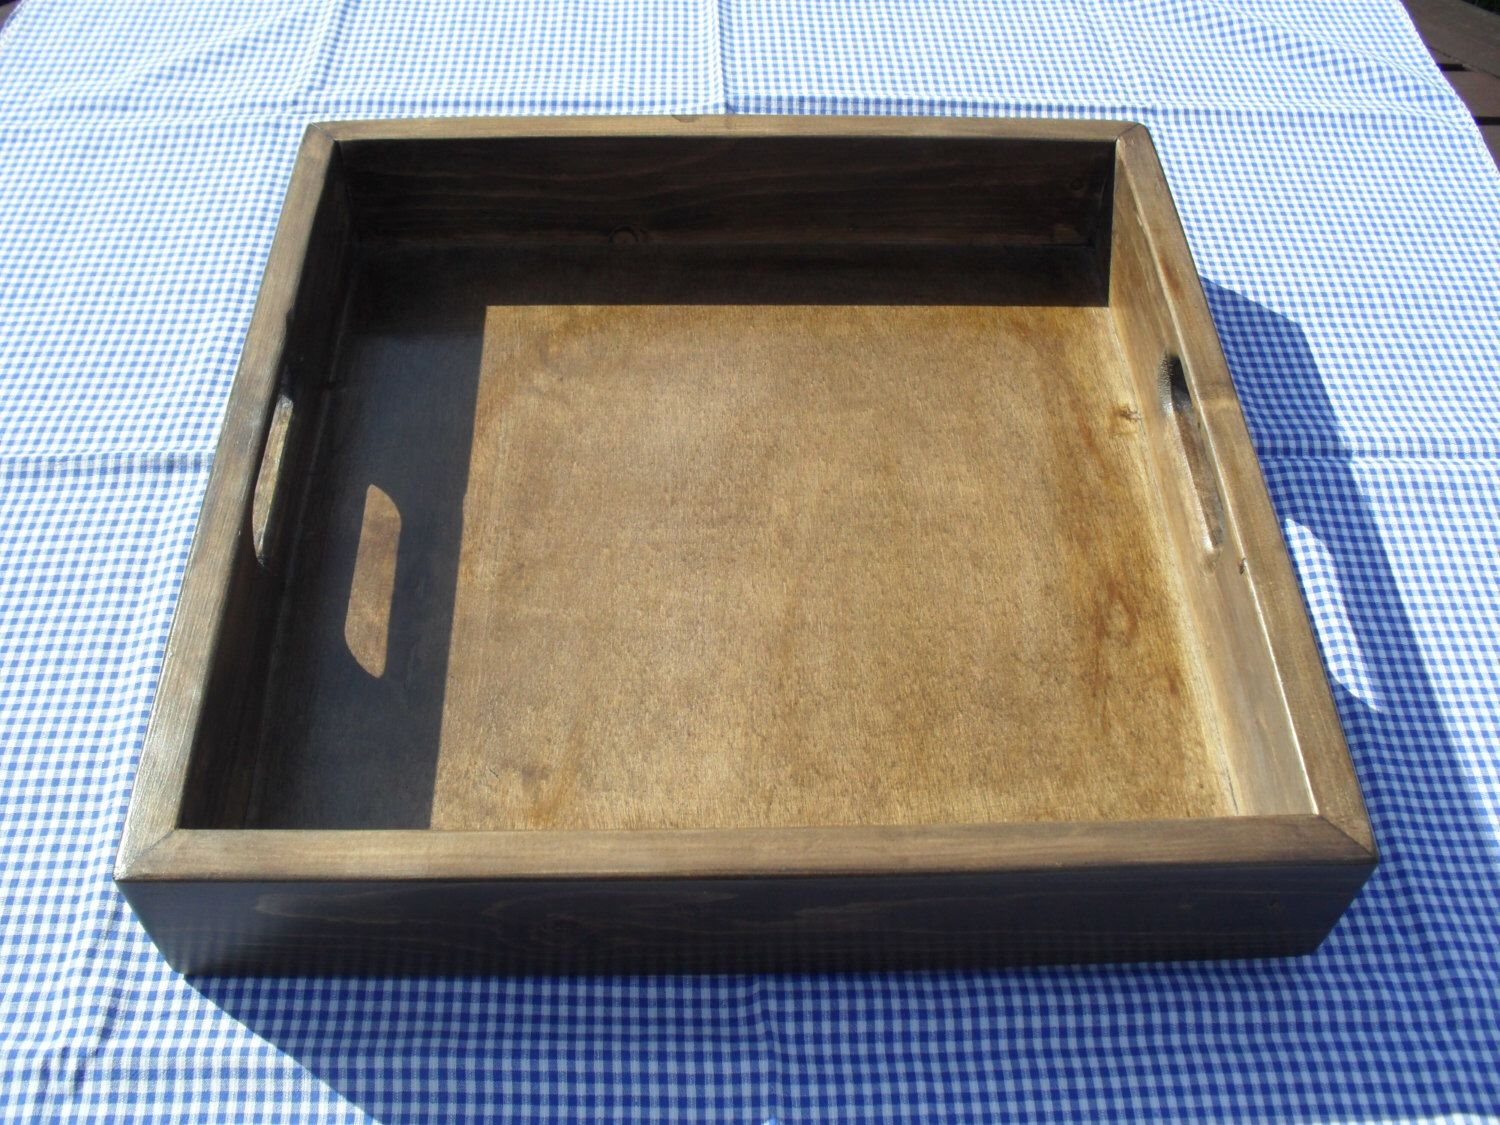 Ottoman Trays Home Decor Awesome Ottoman Tray Wooden Tray Handmade Eco Friendly Tray Re Claimed Decorating Inspiration